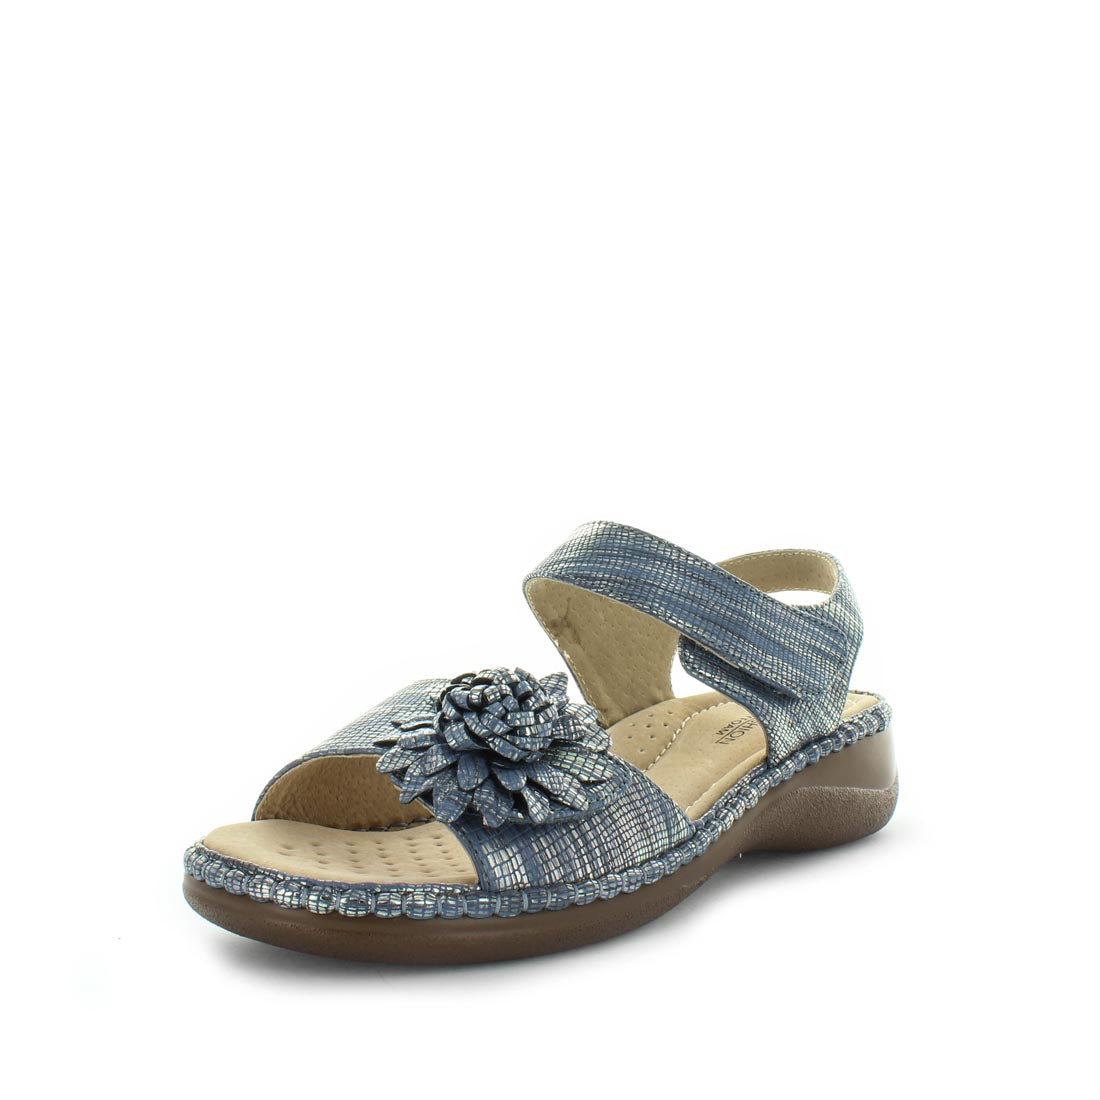 MOJITO by AEROCUSHION - iShoes - NEW ARRIVALS, What's New, Women's Shoes, Women's Shoes: Lifestyle Shoes, Women's Shoes: Sandals - FOOTWEAR-FOOTWEAR